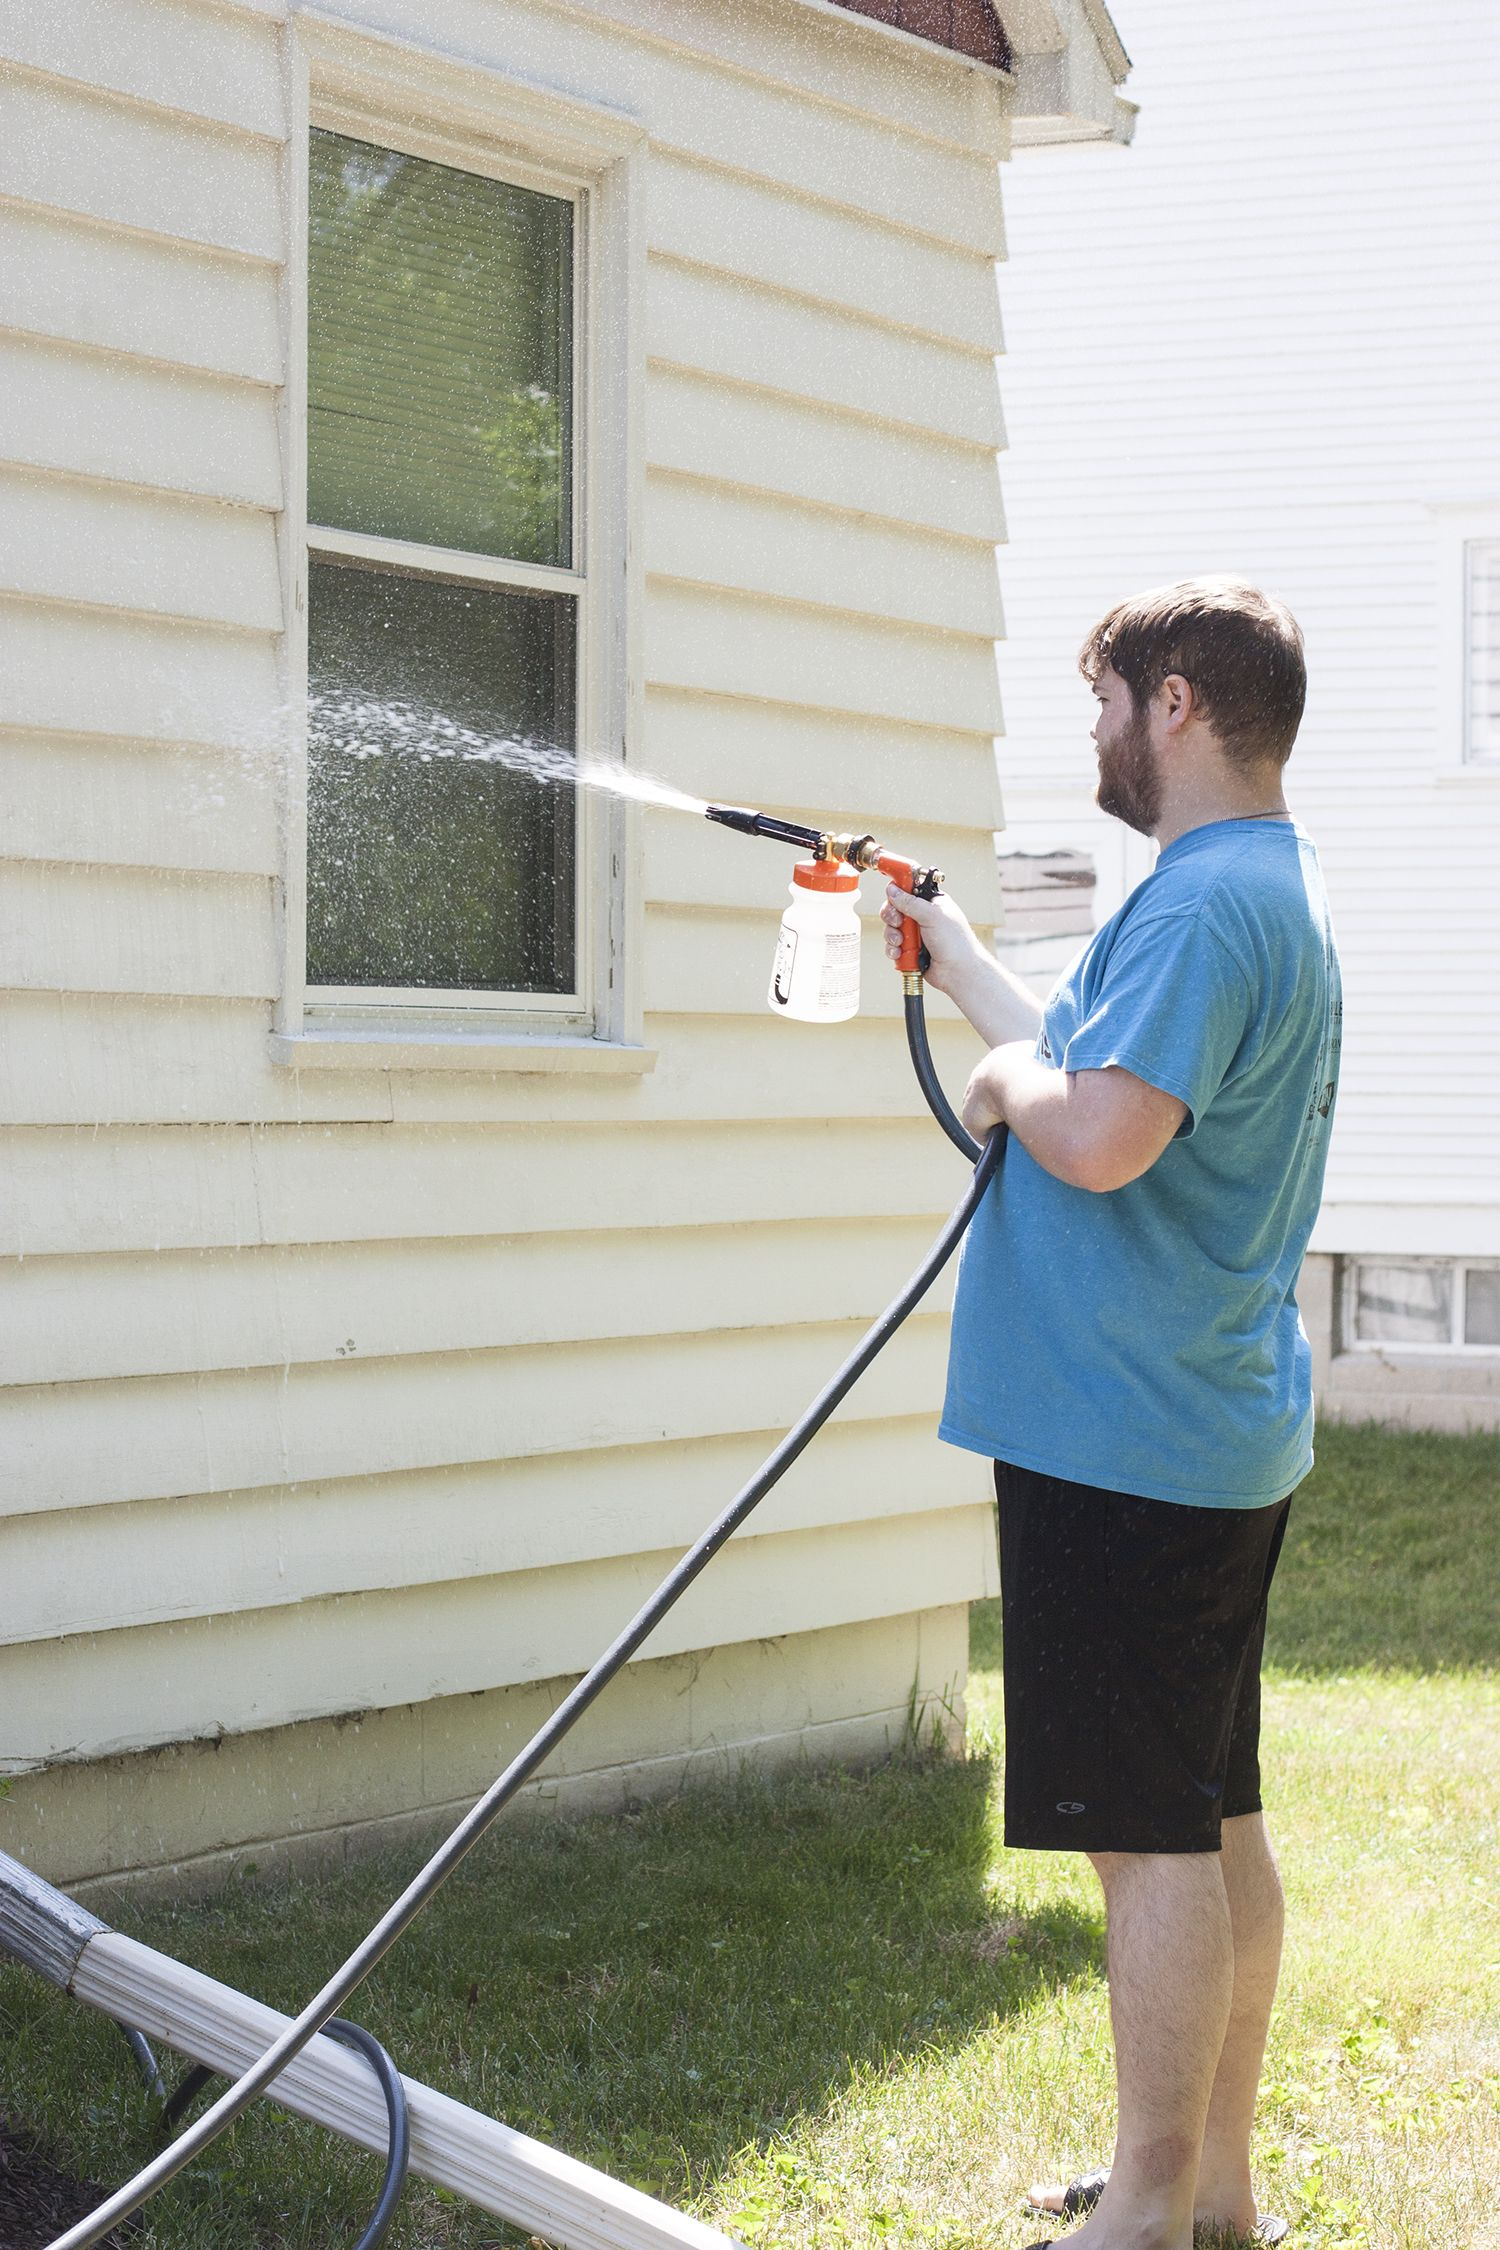 Washing A House Exterior Without A Pressure Washer Siding Gutters Windows Pavement Cleaning Vinyl Siding Vinyl Siding Vinyl Siding Prices